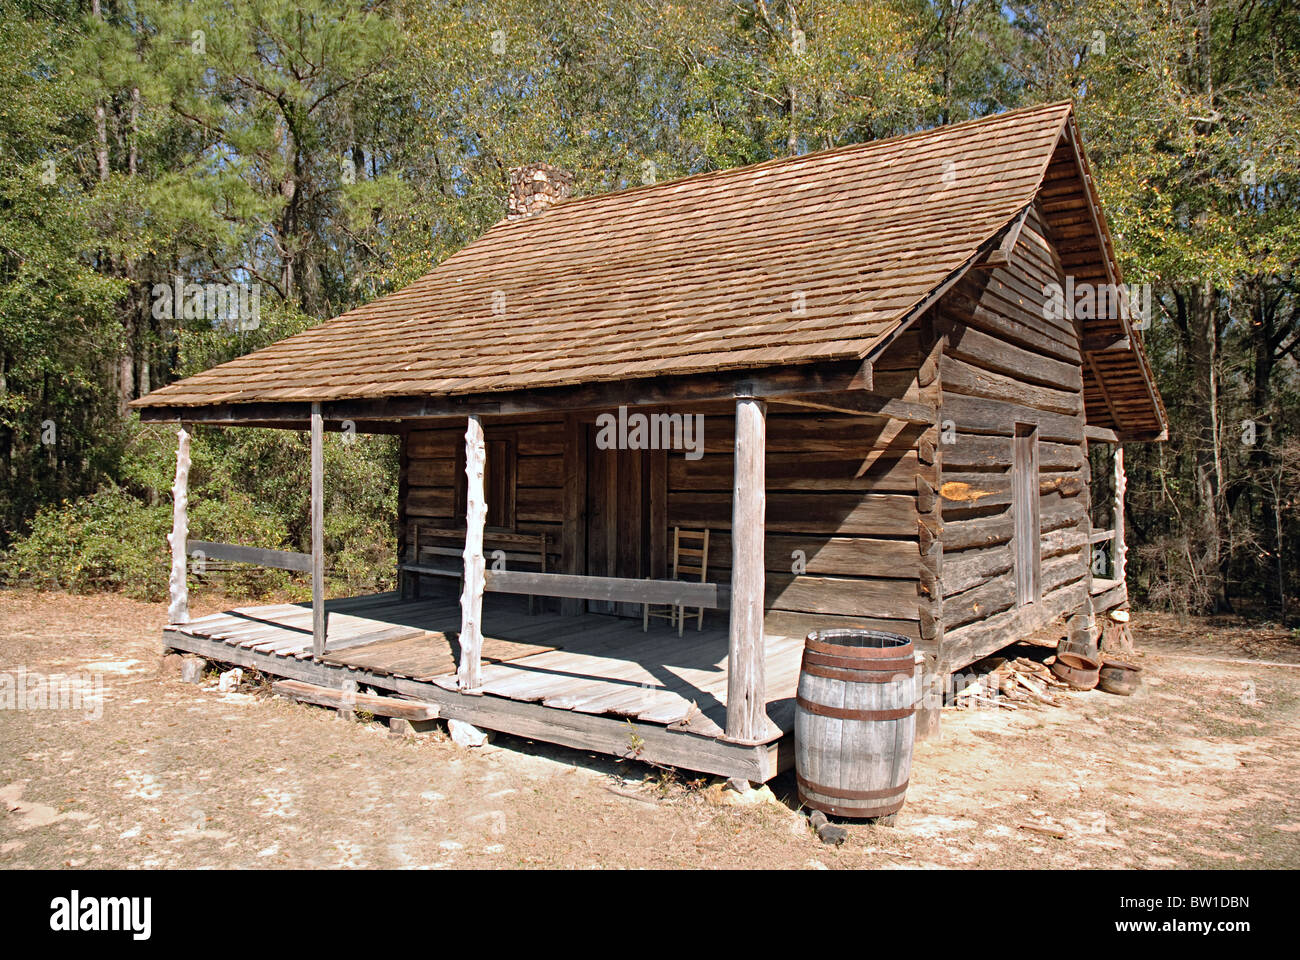 Simple log cabin back in the woods - Stock Image